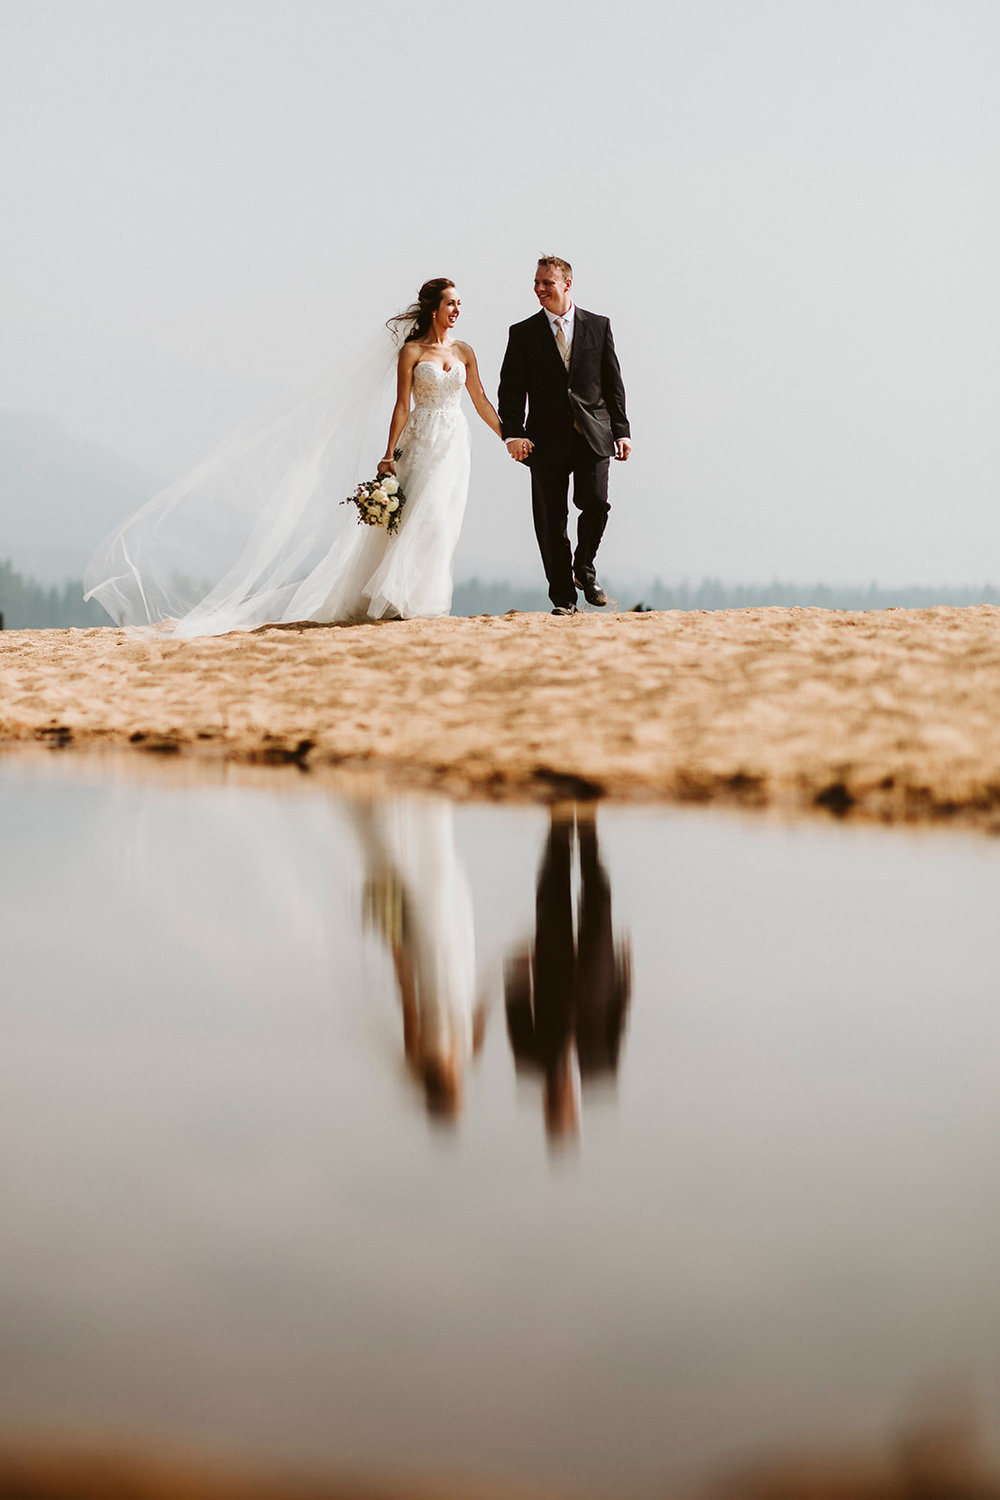 _P8A7455vild-vild photography-photography-wedding-wedding photography-tahoe-lake tahoe-lake tahoe wedding photographer-nevada wedding photographer-mountain wedding.jpg